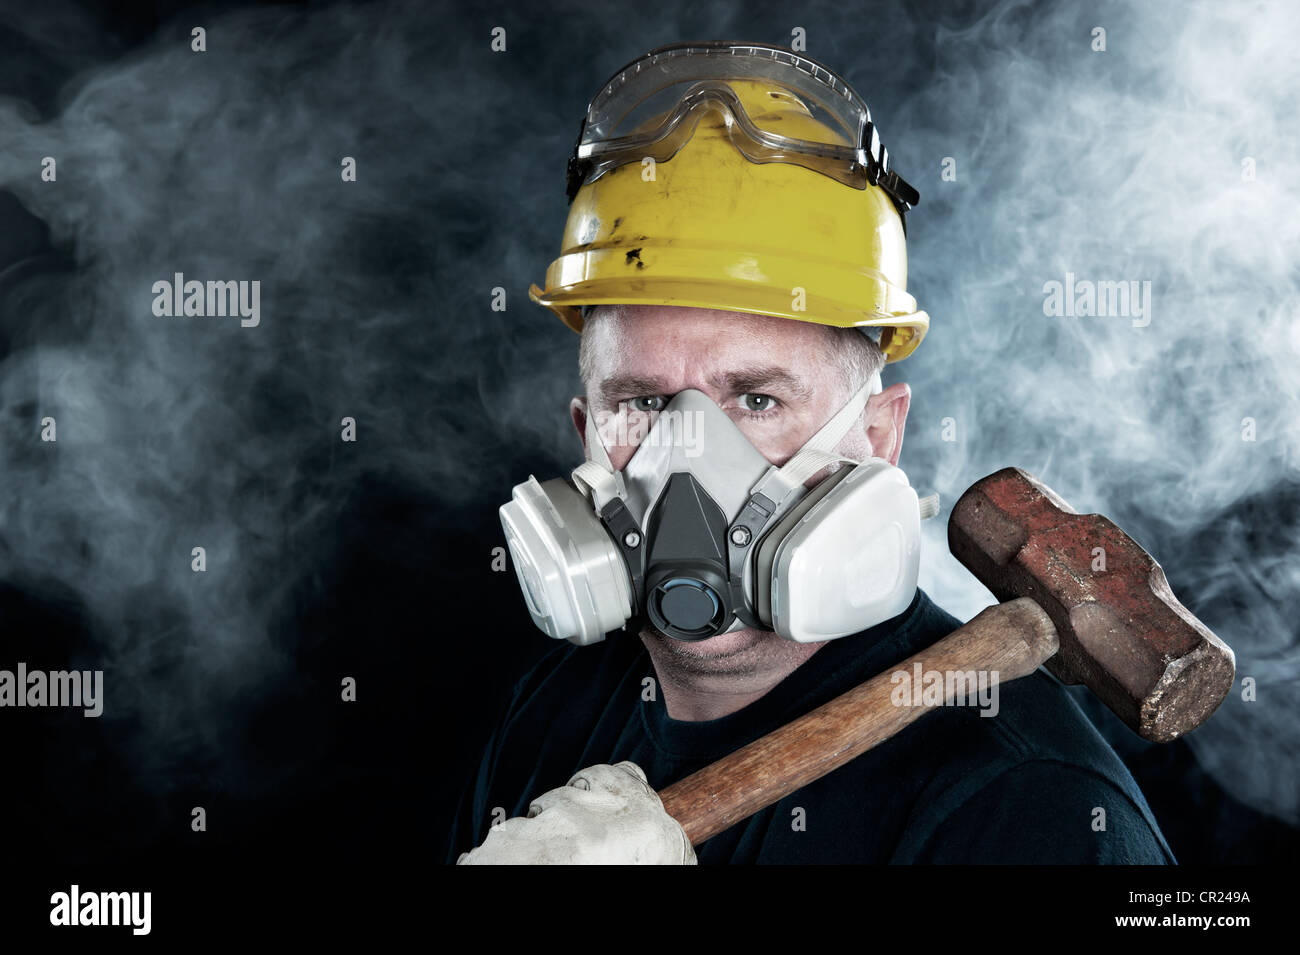 A rescue worker wears a respirator in a smoky, toxic atmosphere carrying a sledgehammer. - Stock Image